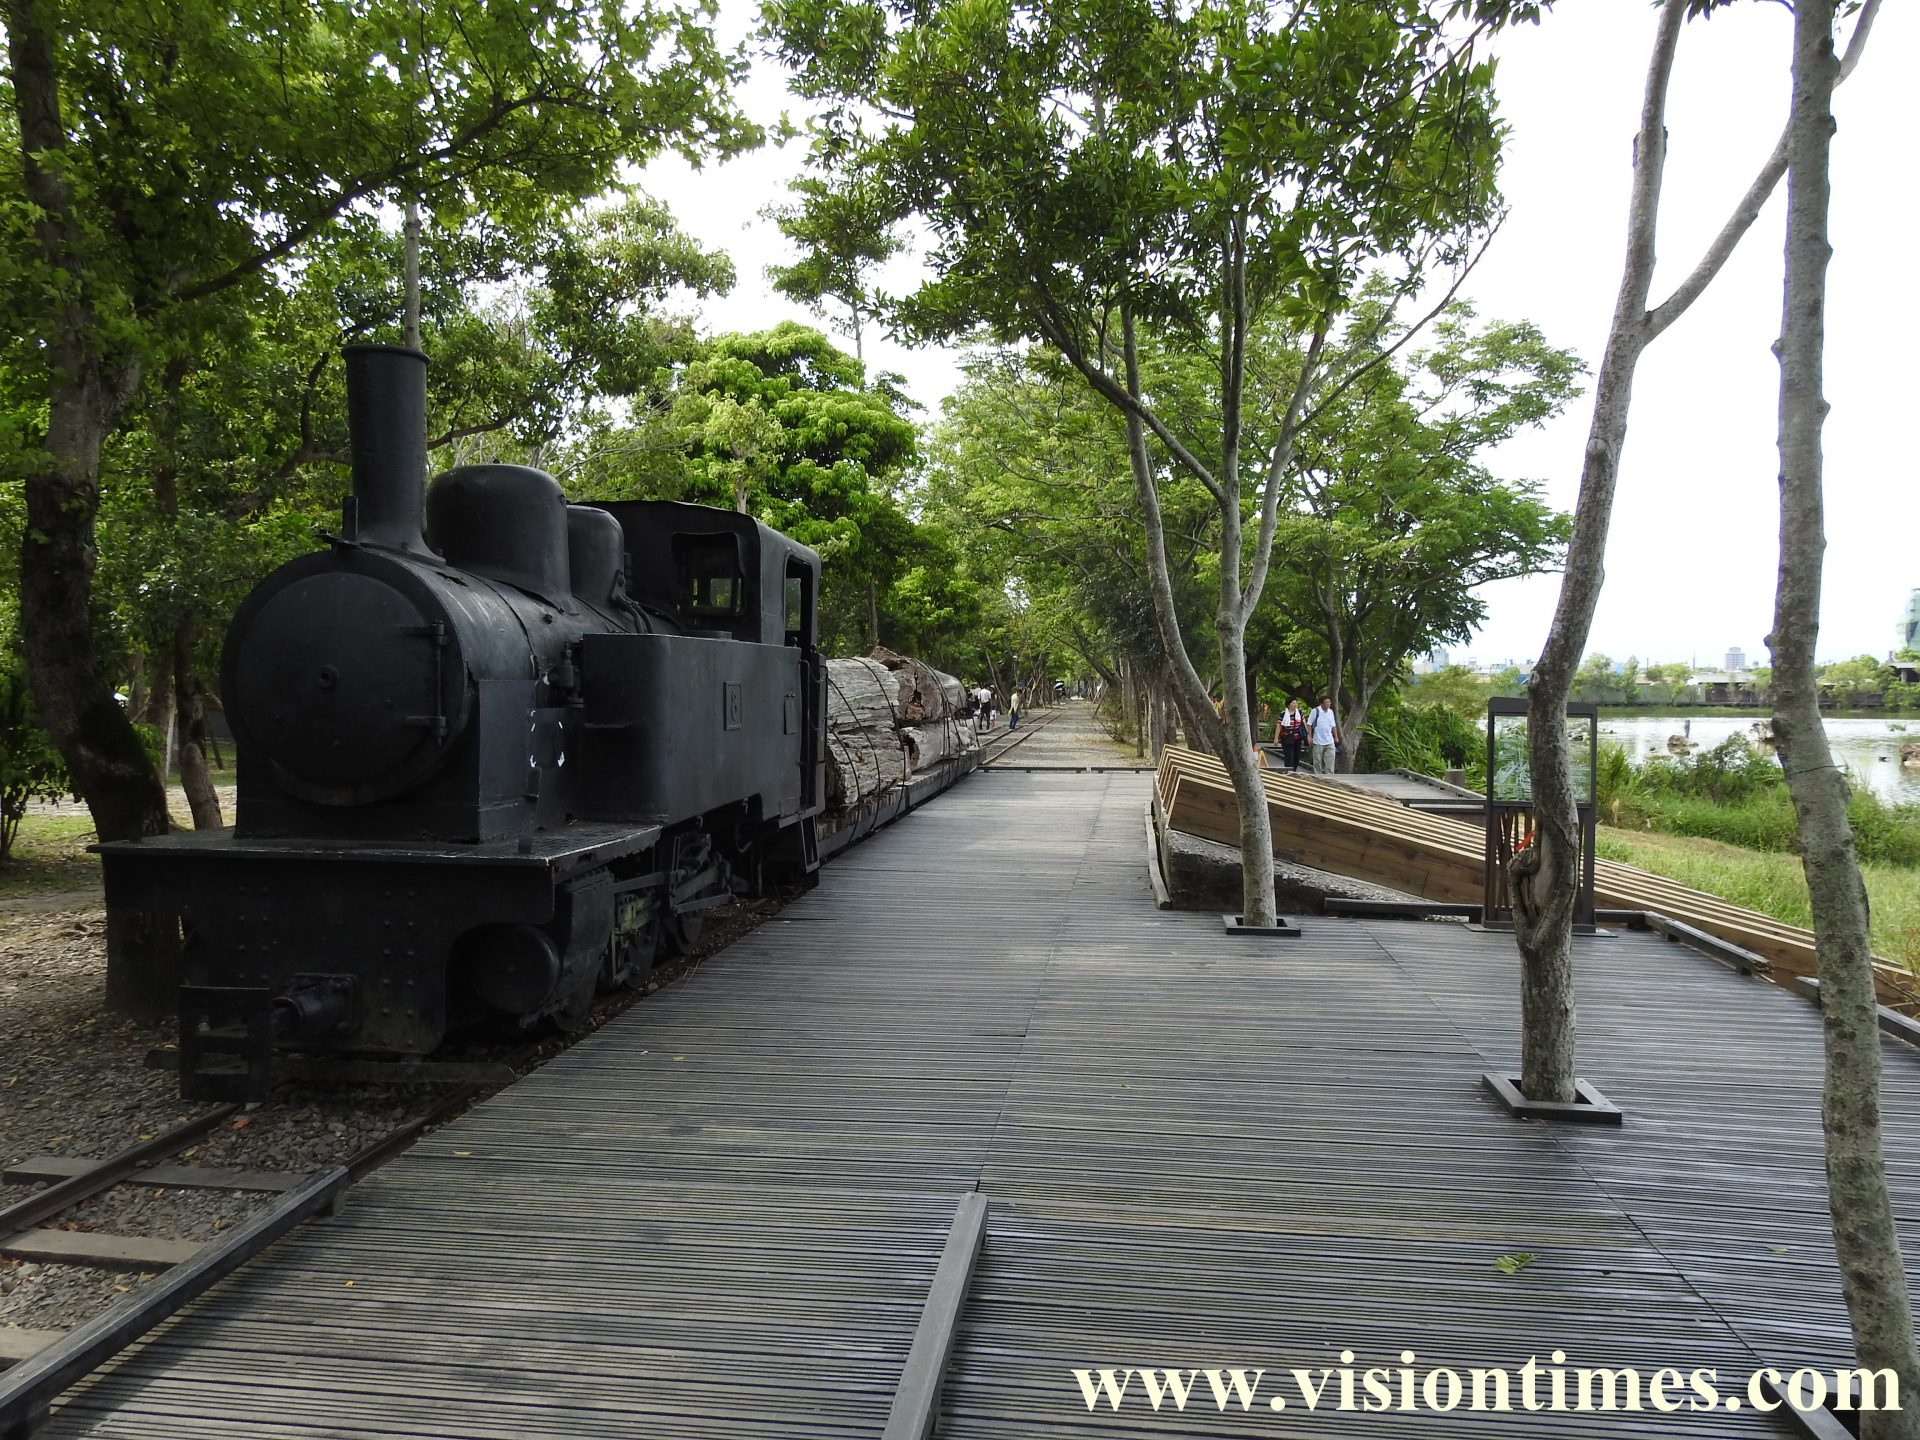 The wooden ramp was used to roll logs from the train into the storage pool in the past.(Image: Billy Shyu / Vision Times)